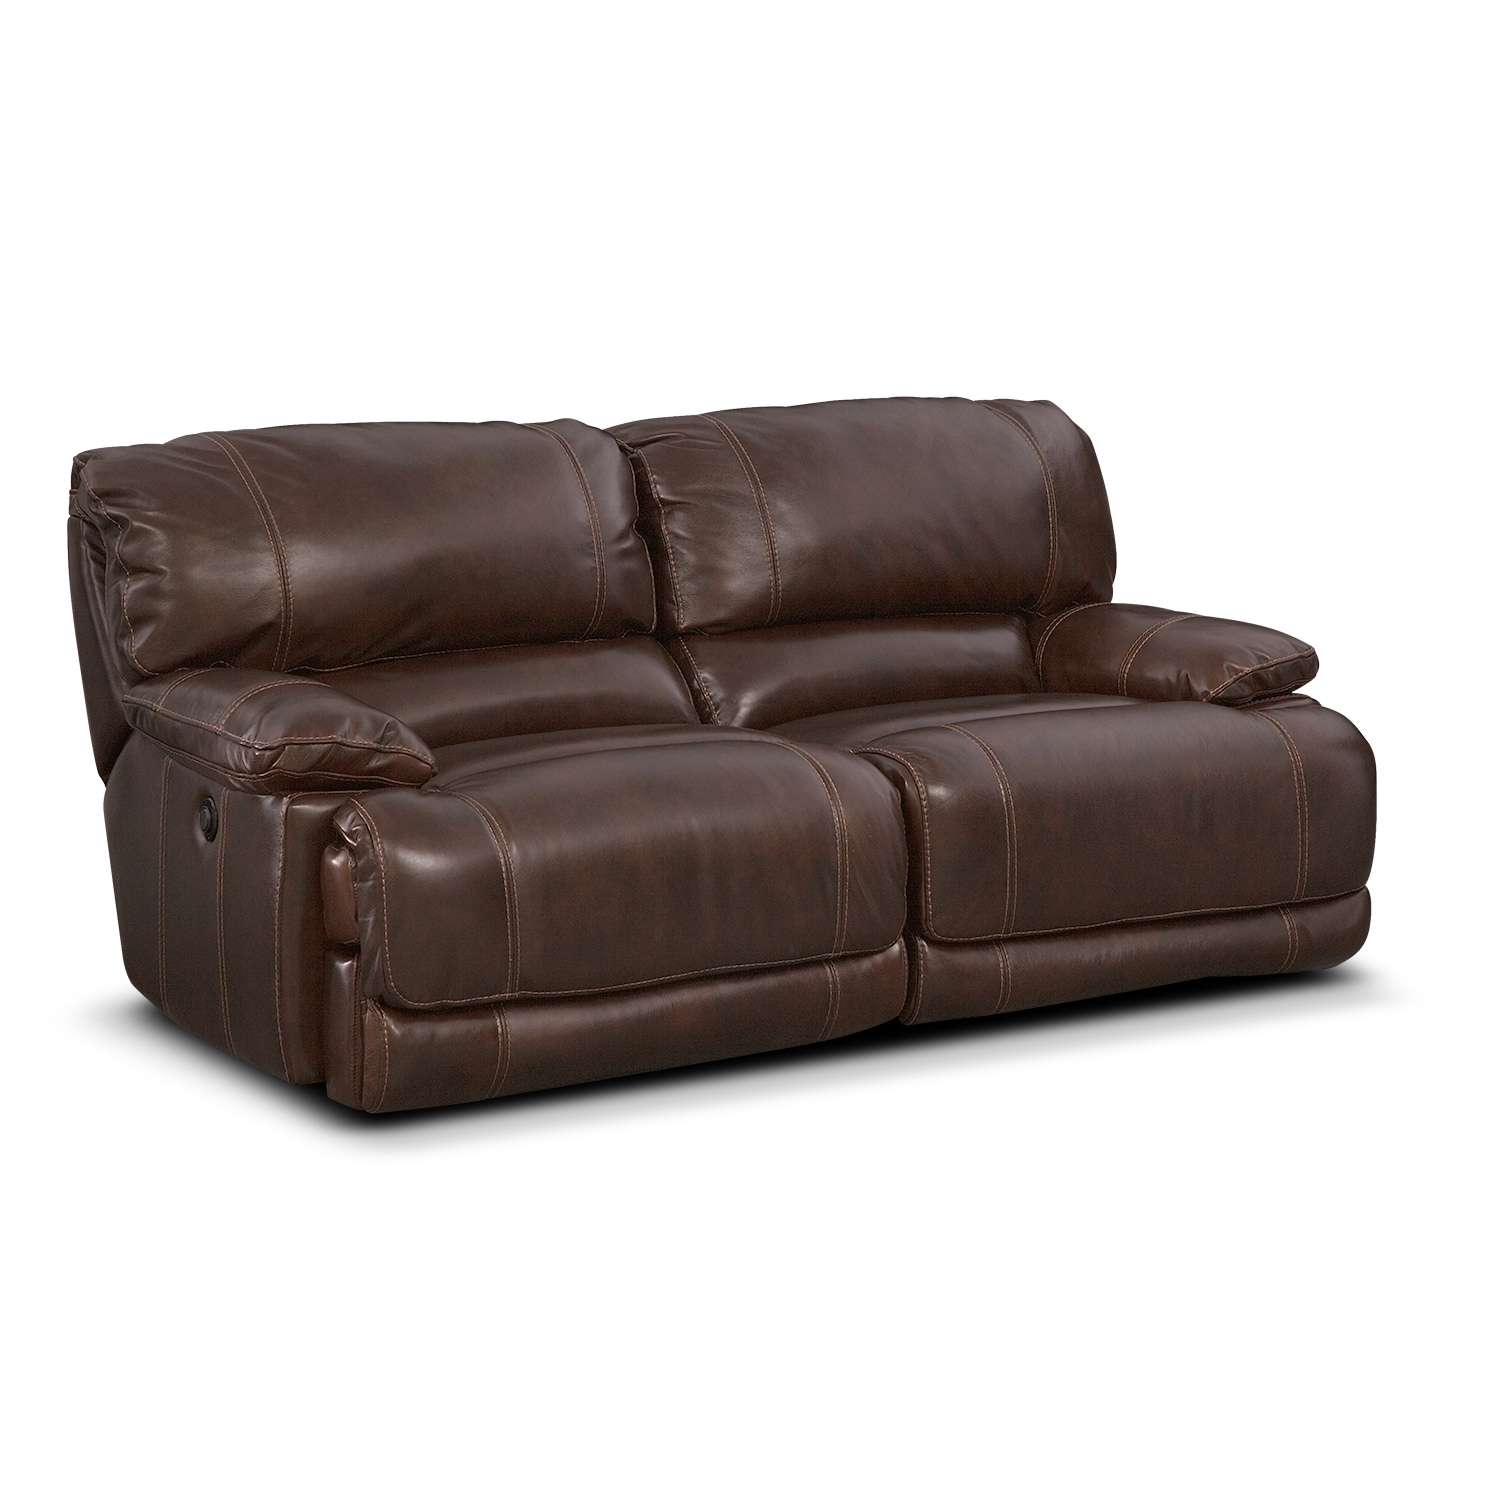 ... Reclining Sofa - Brown. Hover to zoom  sc 1 st  Value City Furniture & St. Malo Power Reclining Sofa - Brown | Value City Furniture islam-shia.org